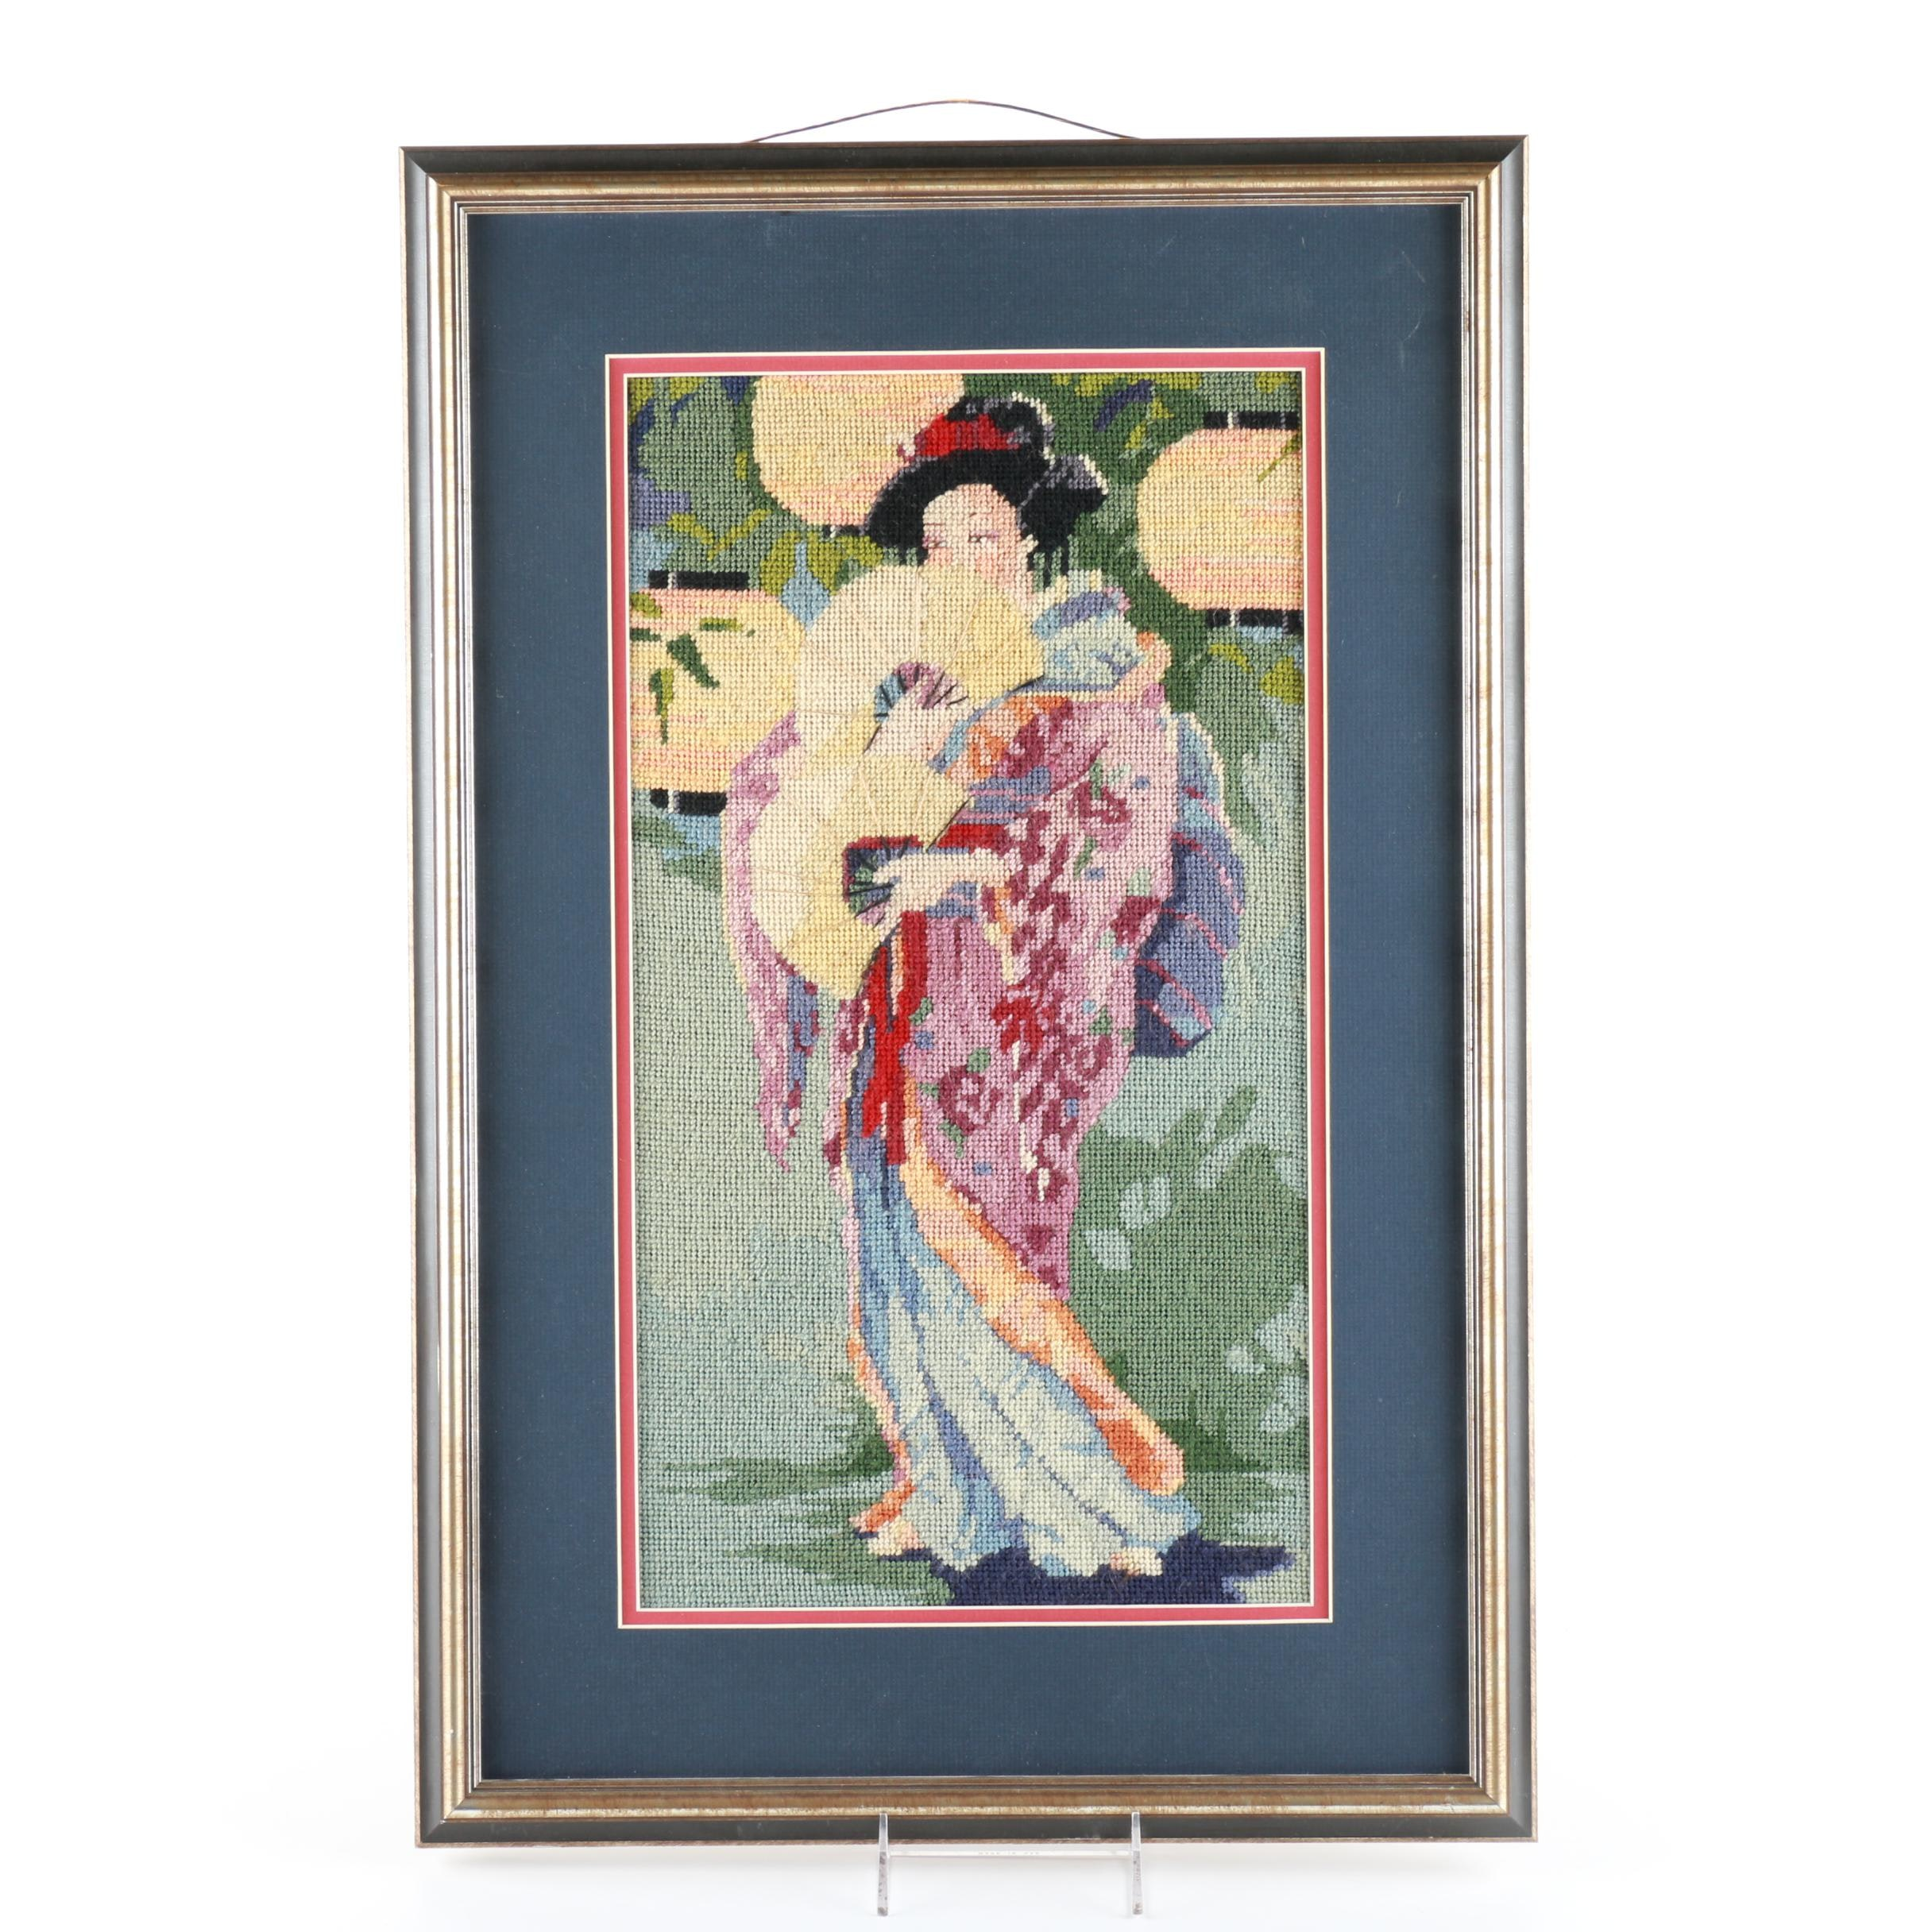 Framed Needlepoint Piece of a Japanese Woman